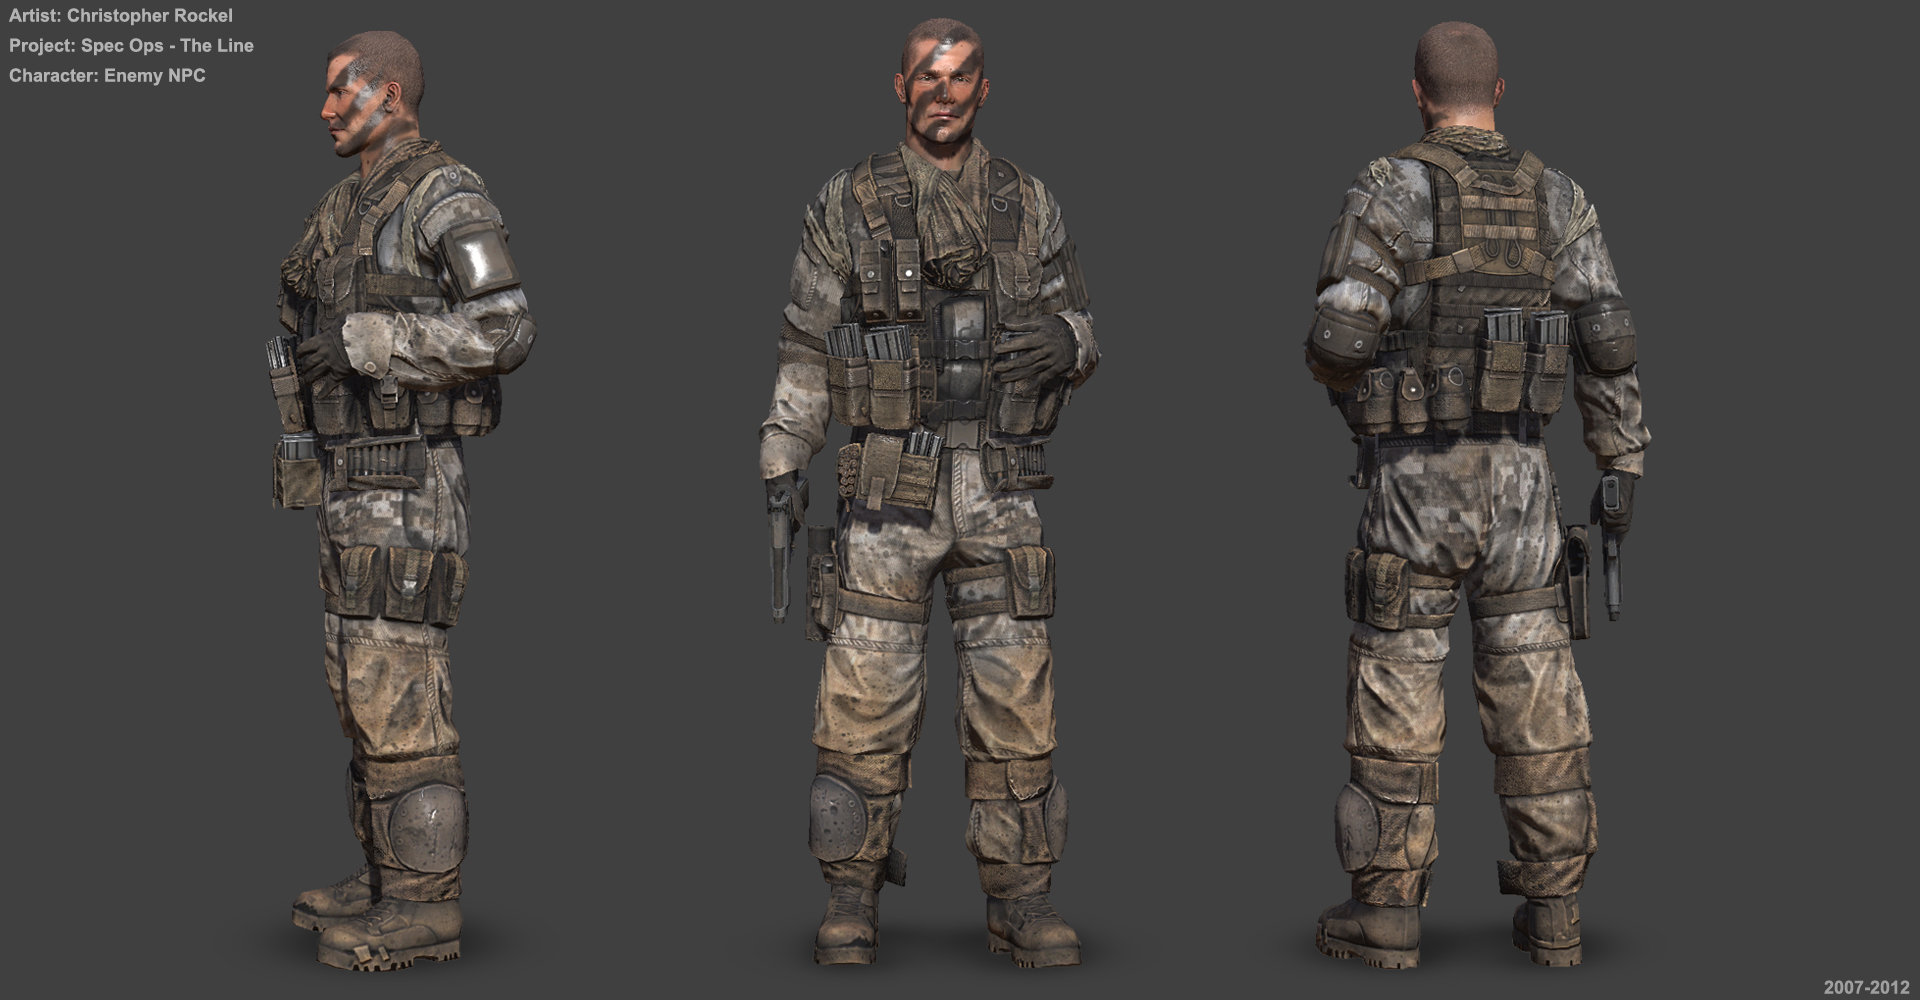 The Line Artist : Artstation spec ops the line characters christopher rockel